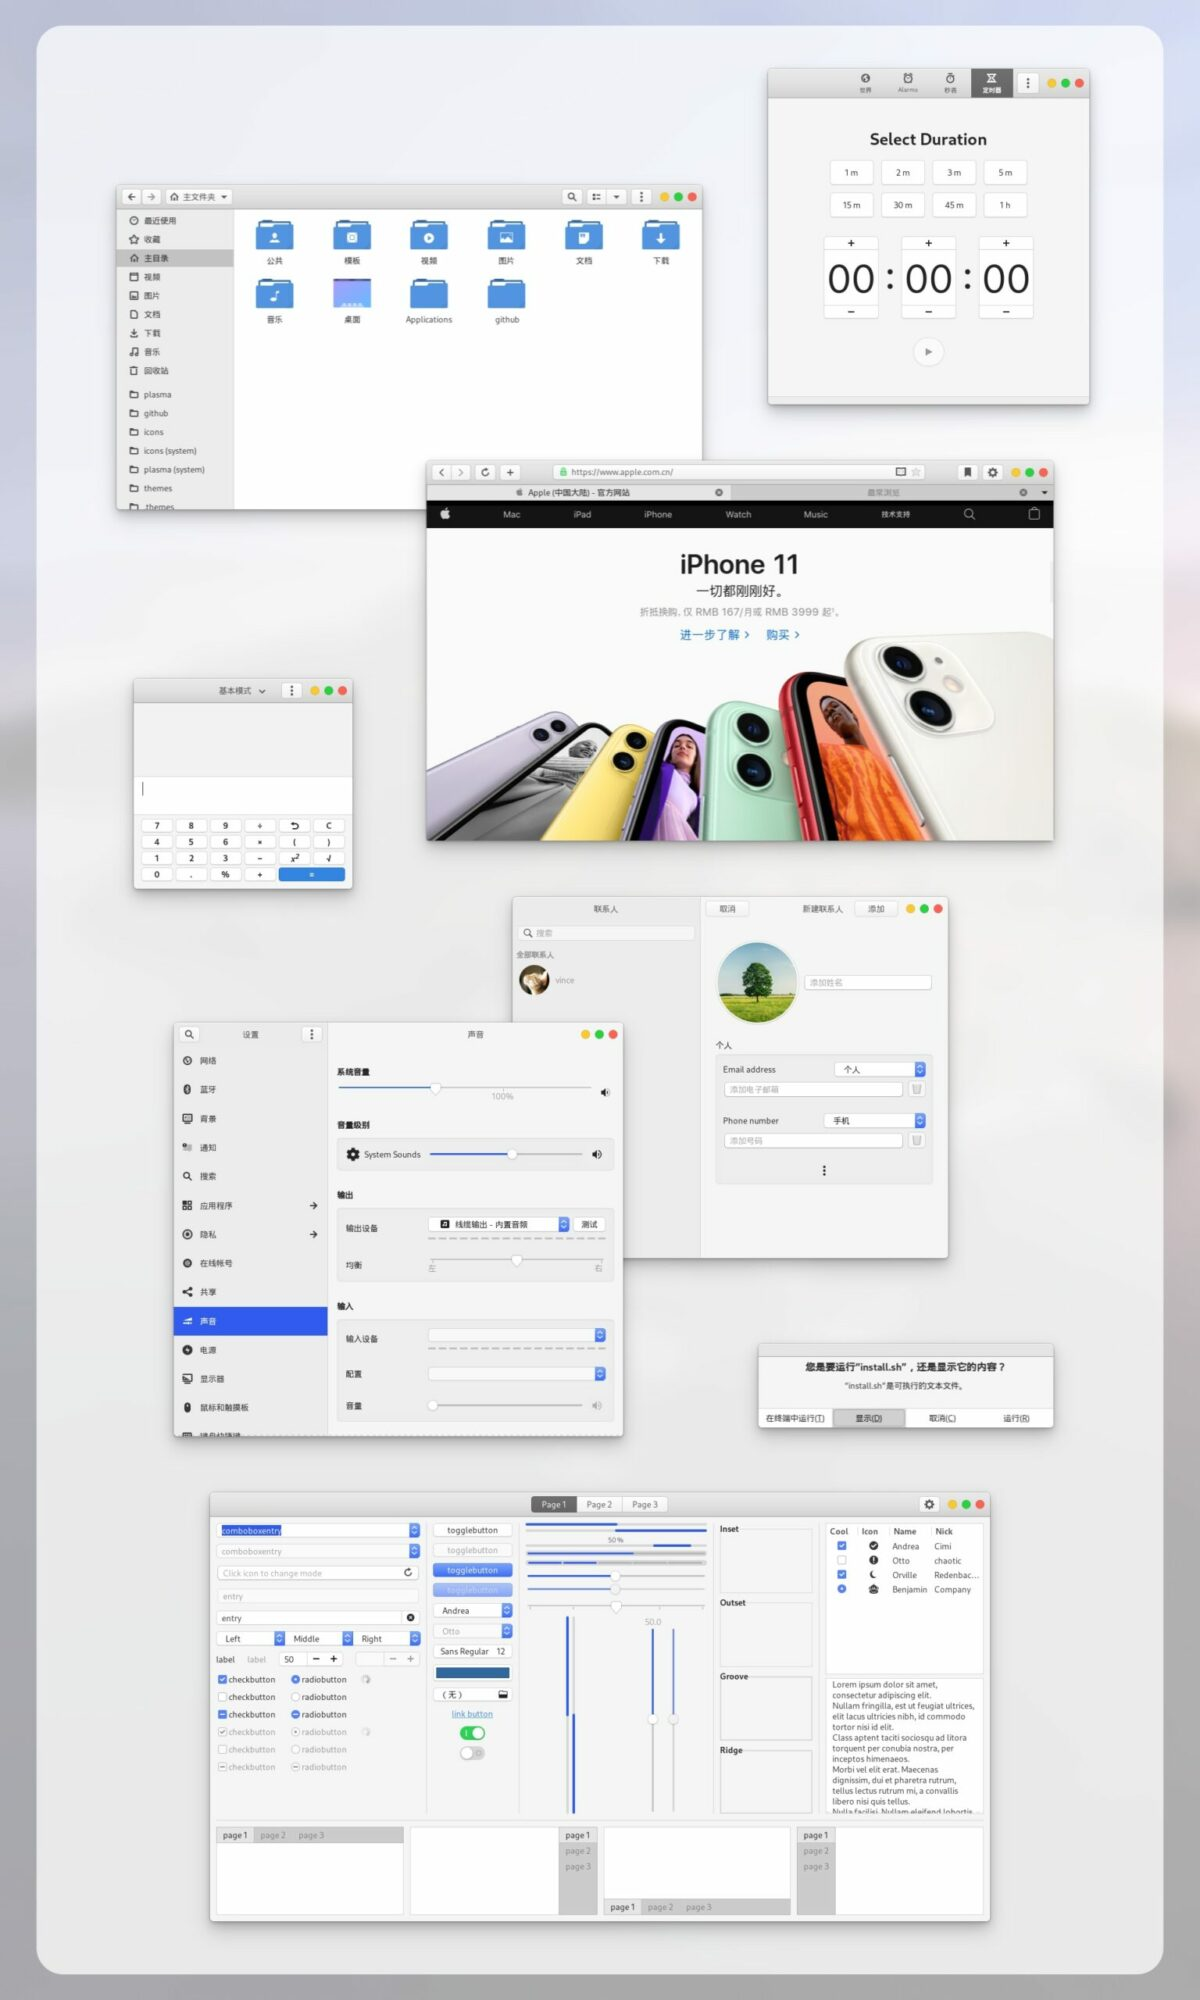 how to install the mcata gtk theme on linux 1 How to install the Mcata GTK theme on Linux